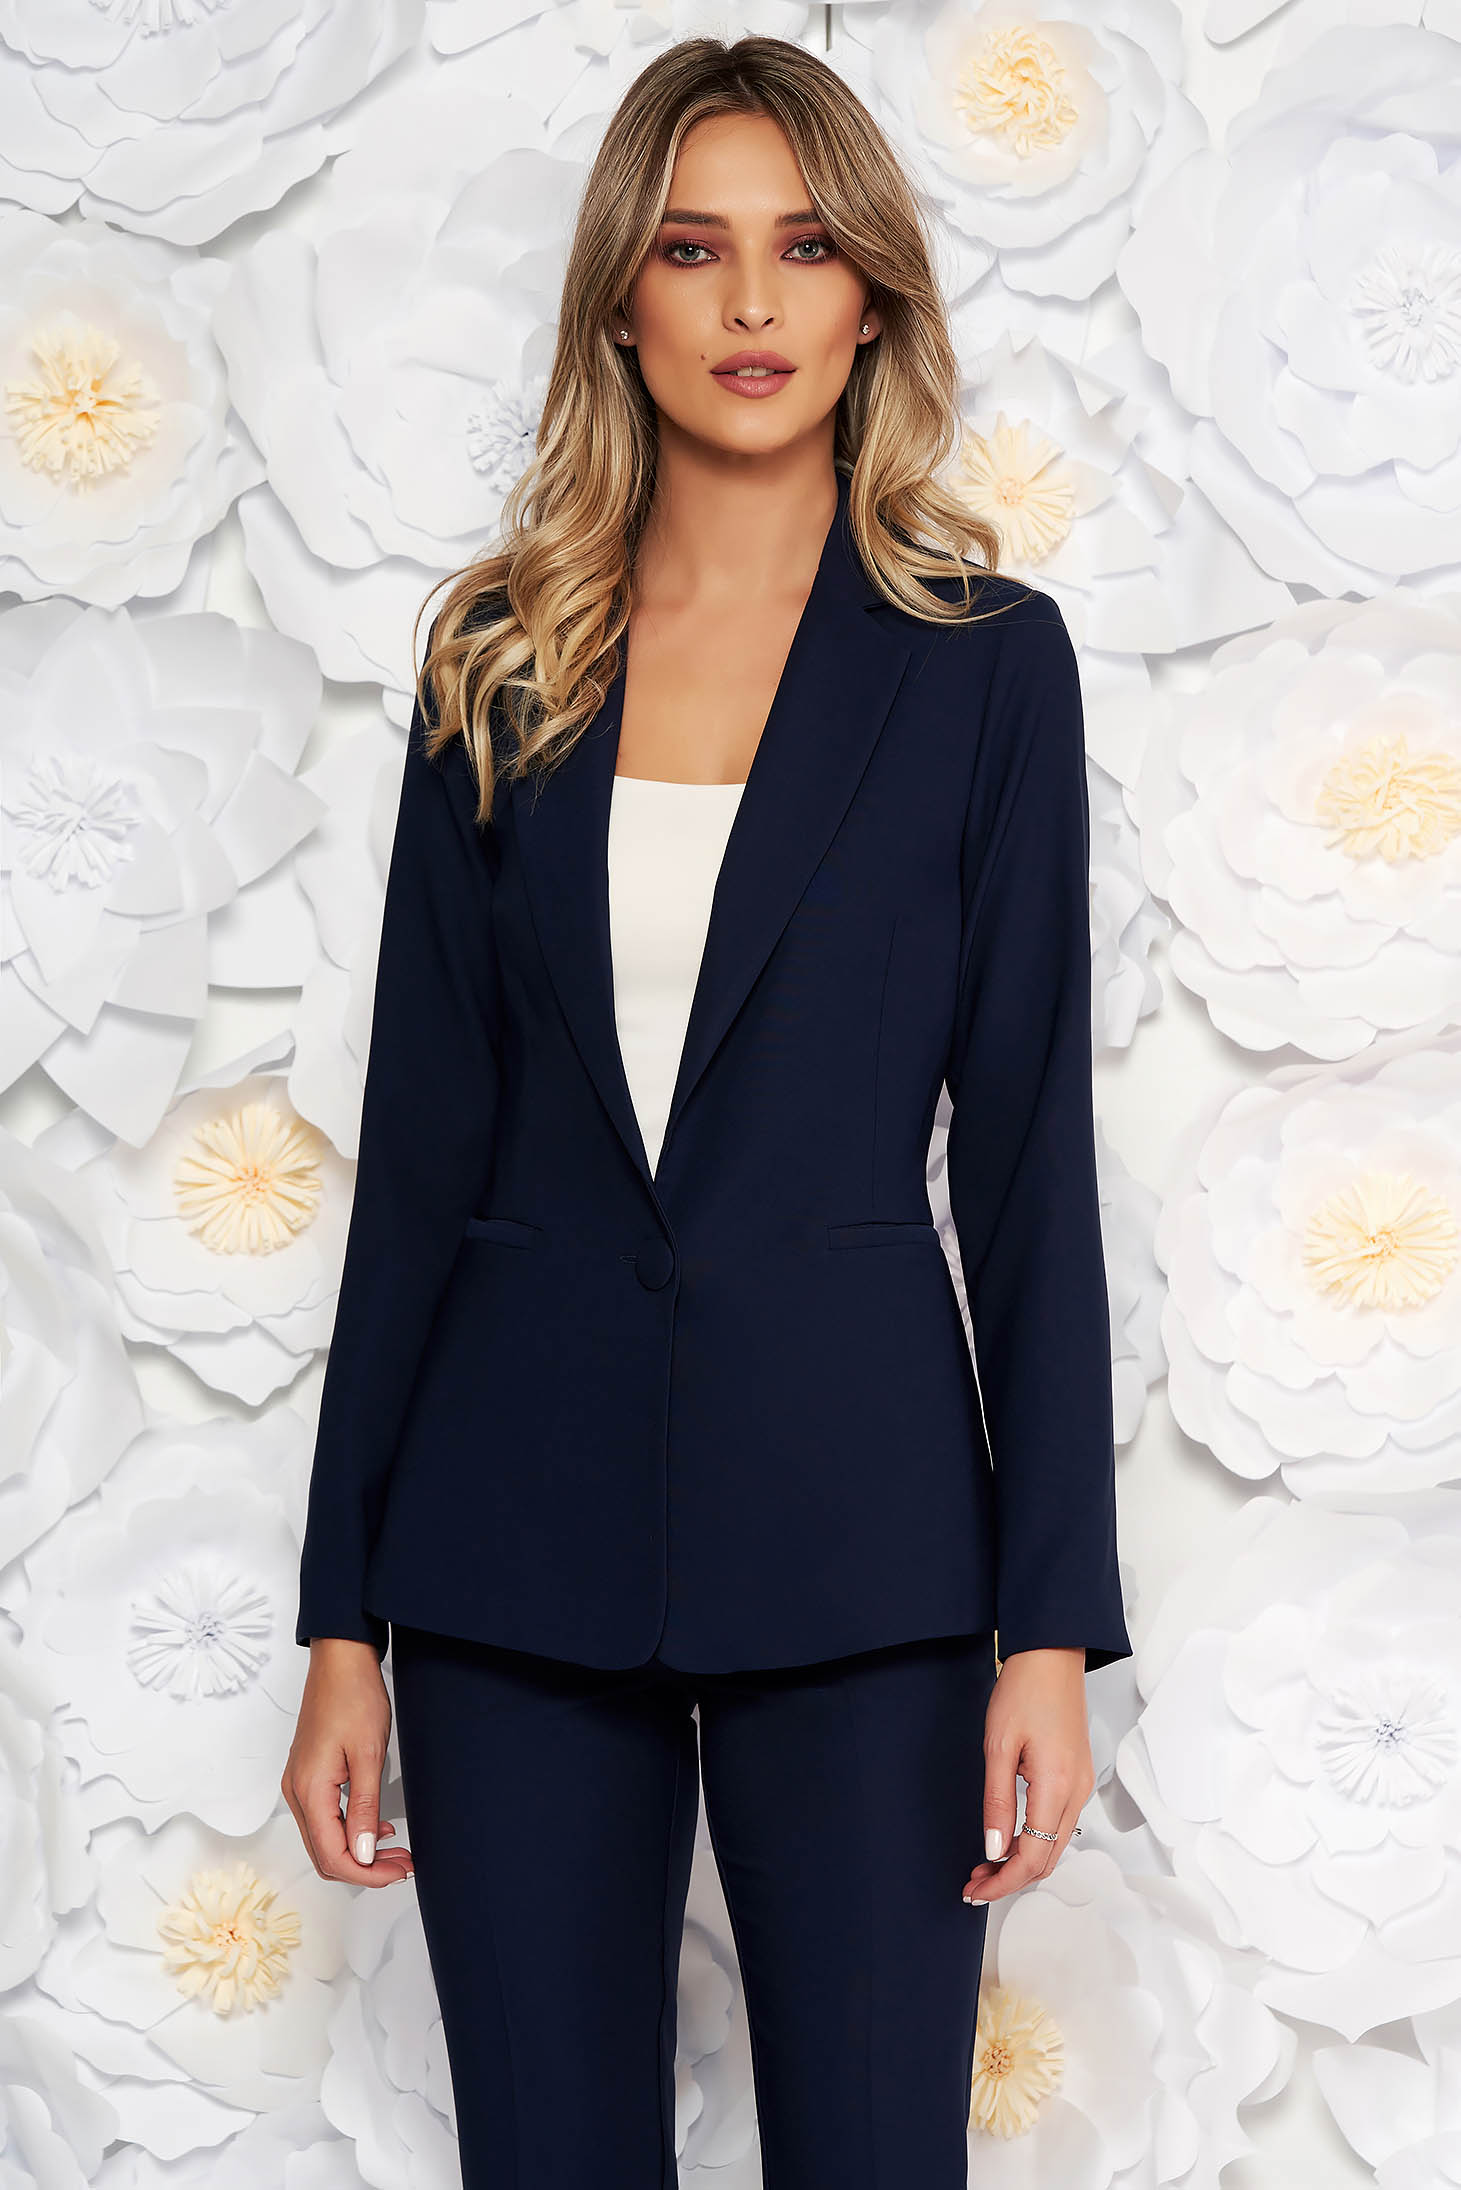 Artista darkblue jacket with inside lining office from non elastic fabric arched cut